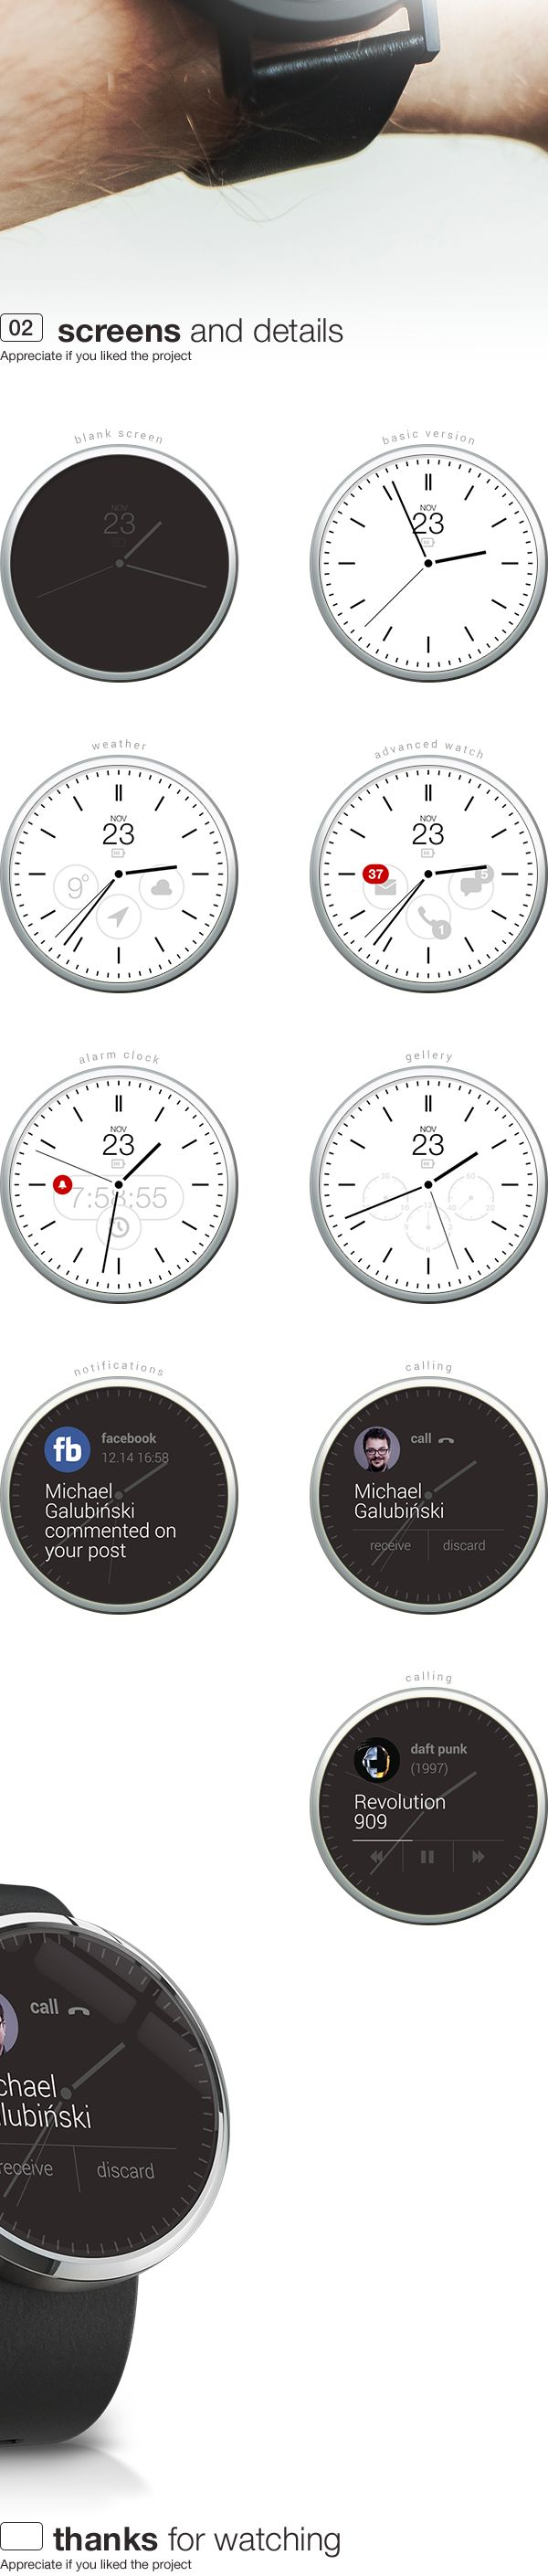 android wear concept watch app by Michal Galubinski, via Behance